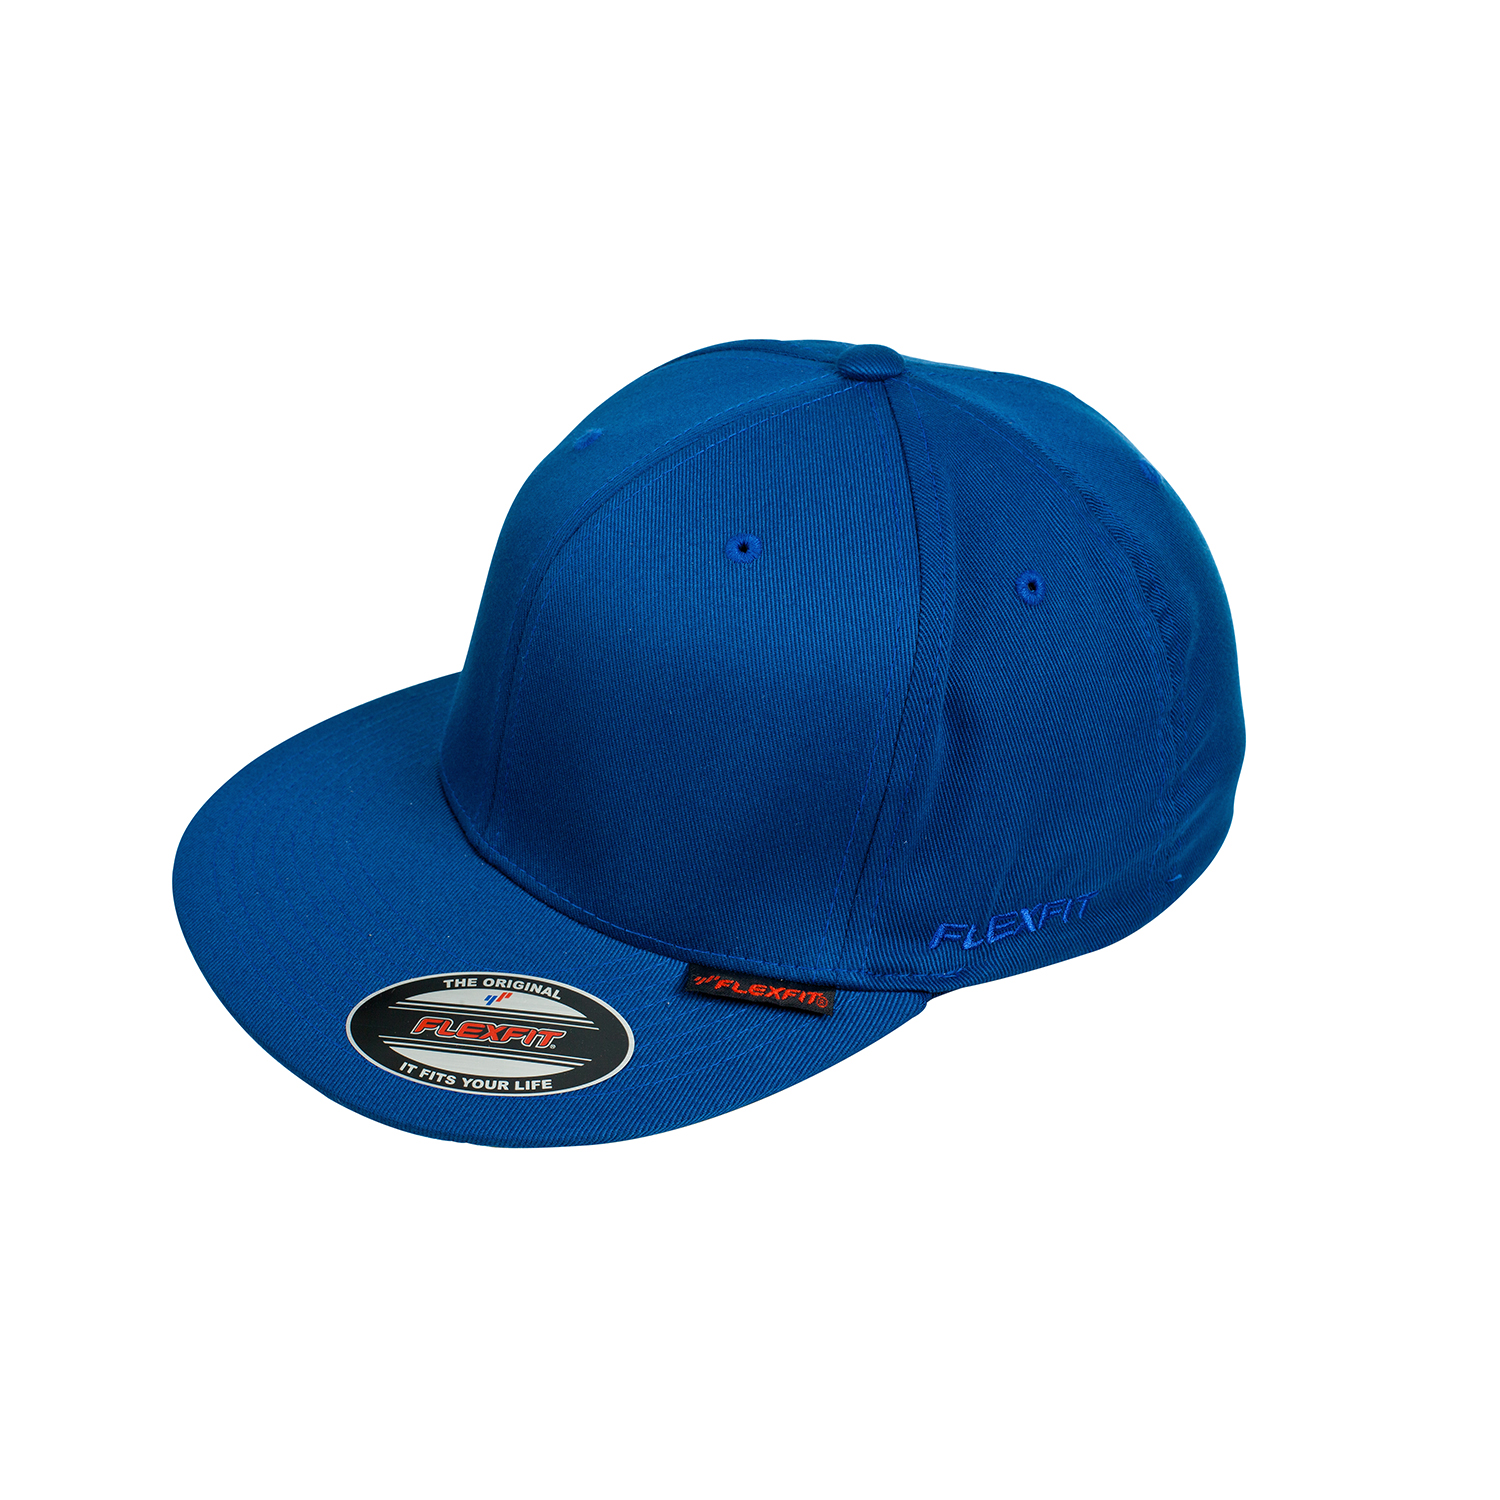 b2c4fee90e7 Flexfit Pro Baseball Cap - Southern Cross Brands